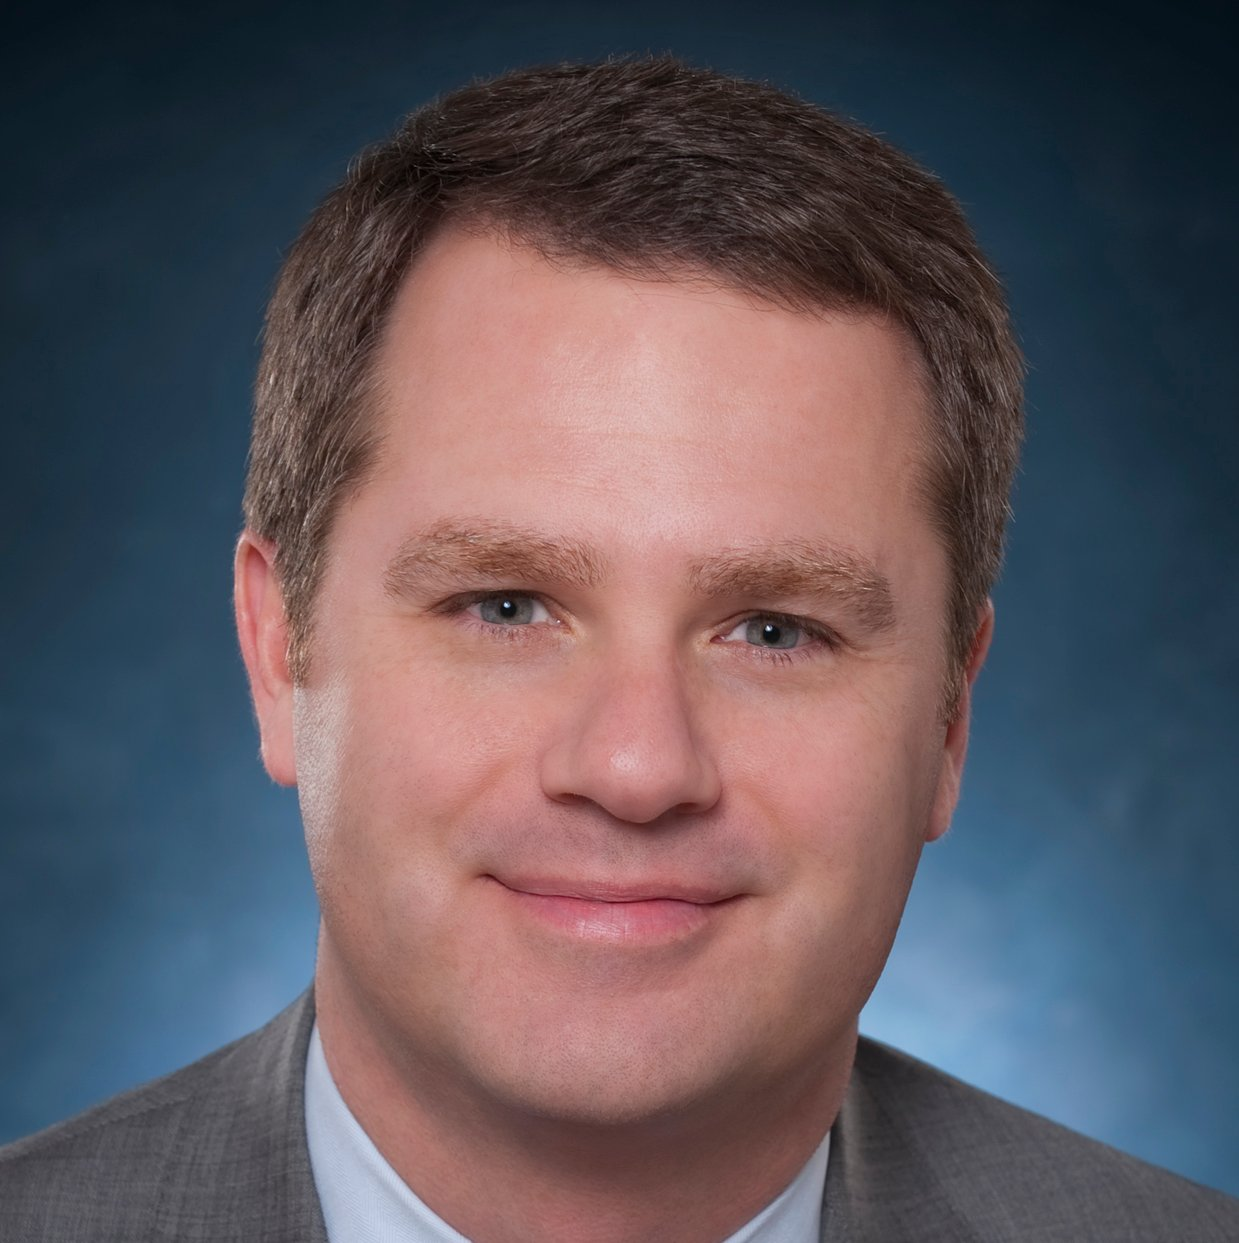 profile picture for Doug McMillon, Walmart CEO